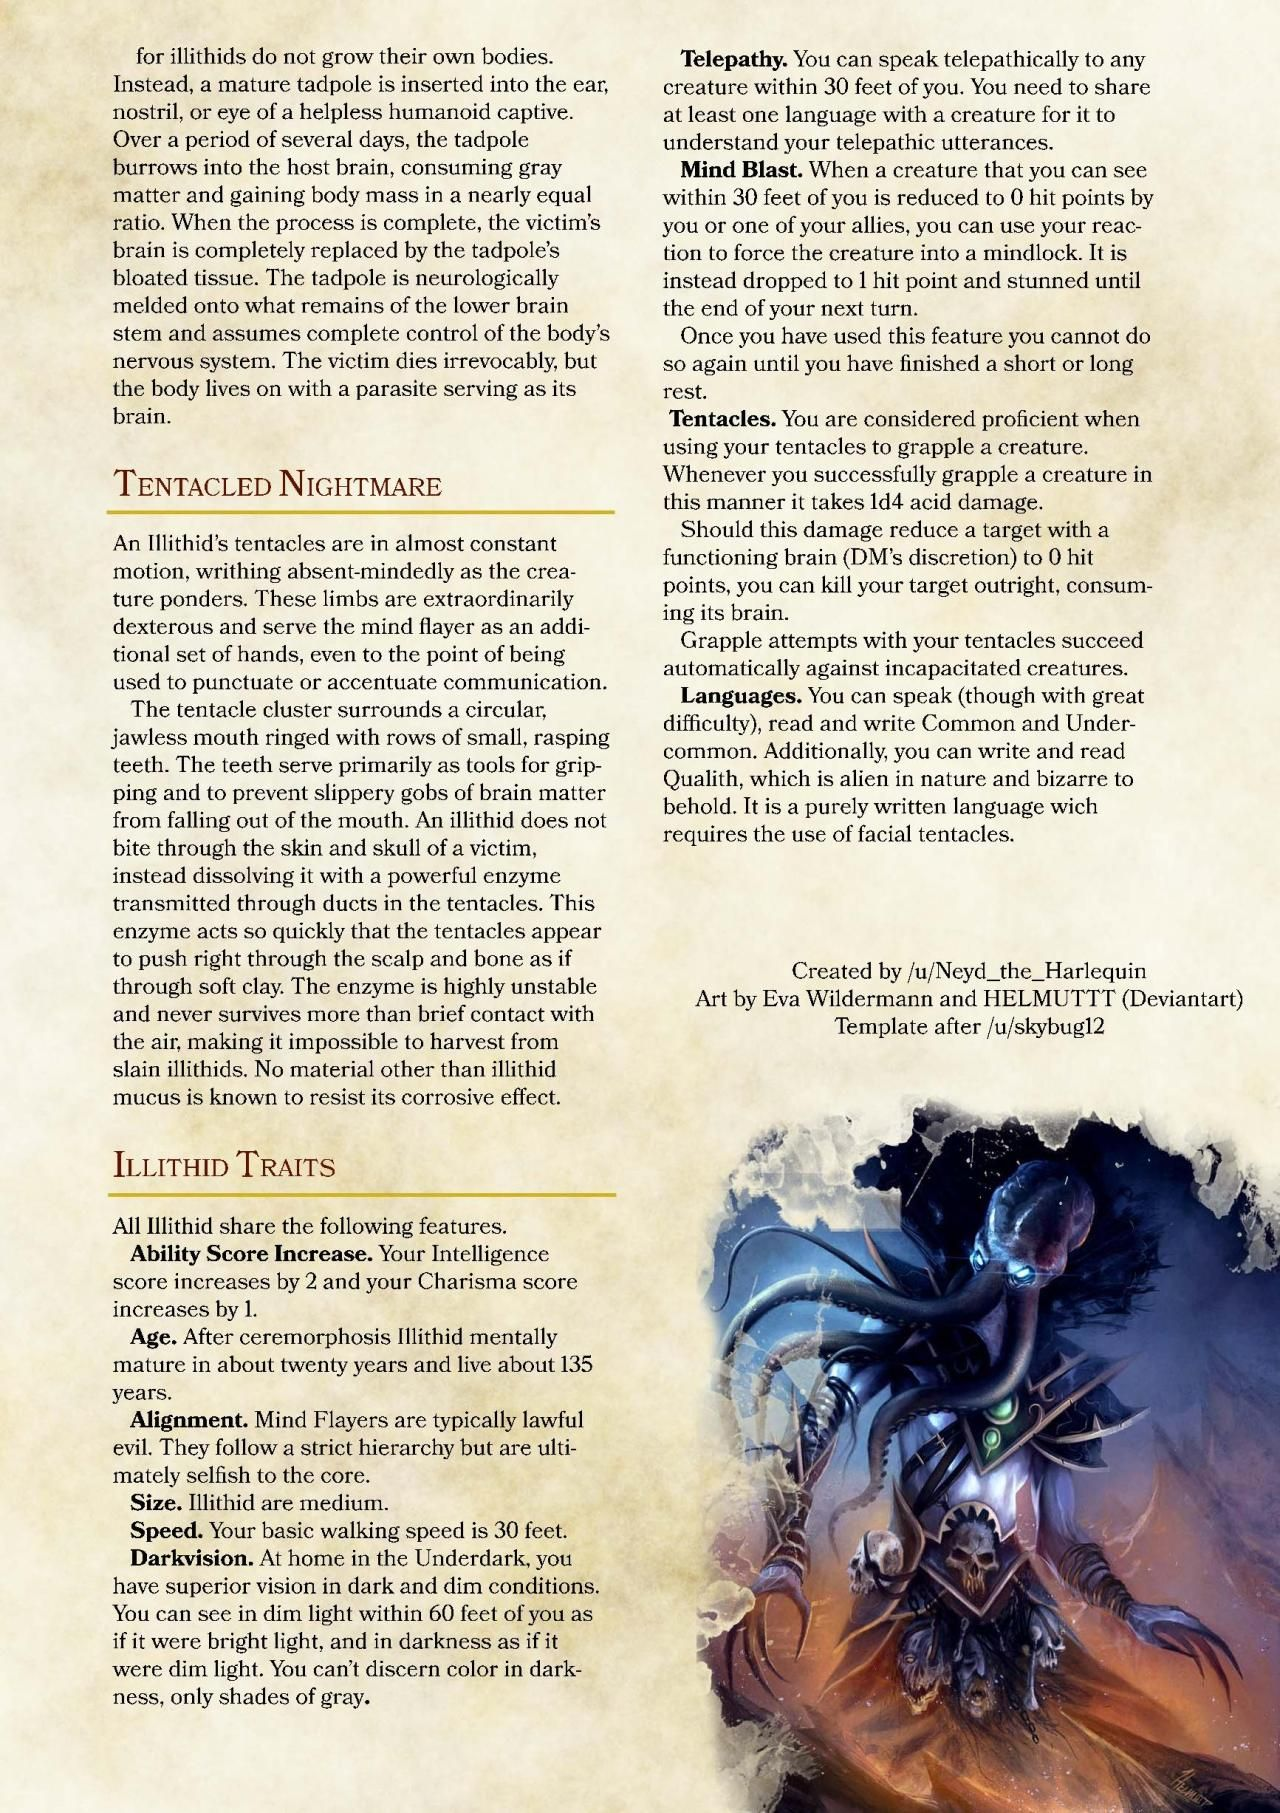 DnD 5e Homebrew — Illithid Race by Neyd the Harlequin